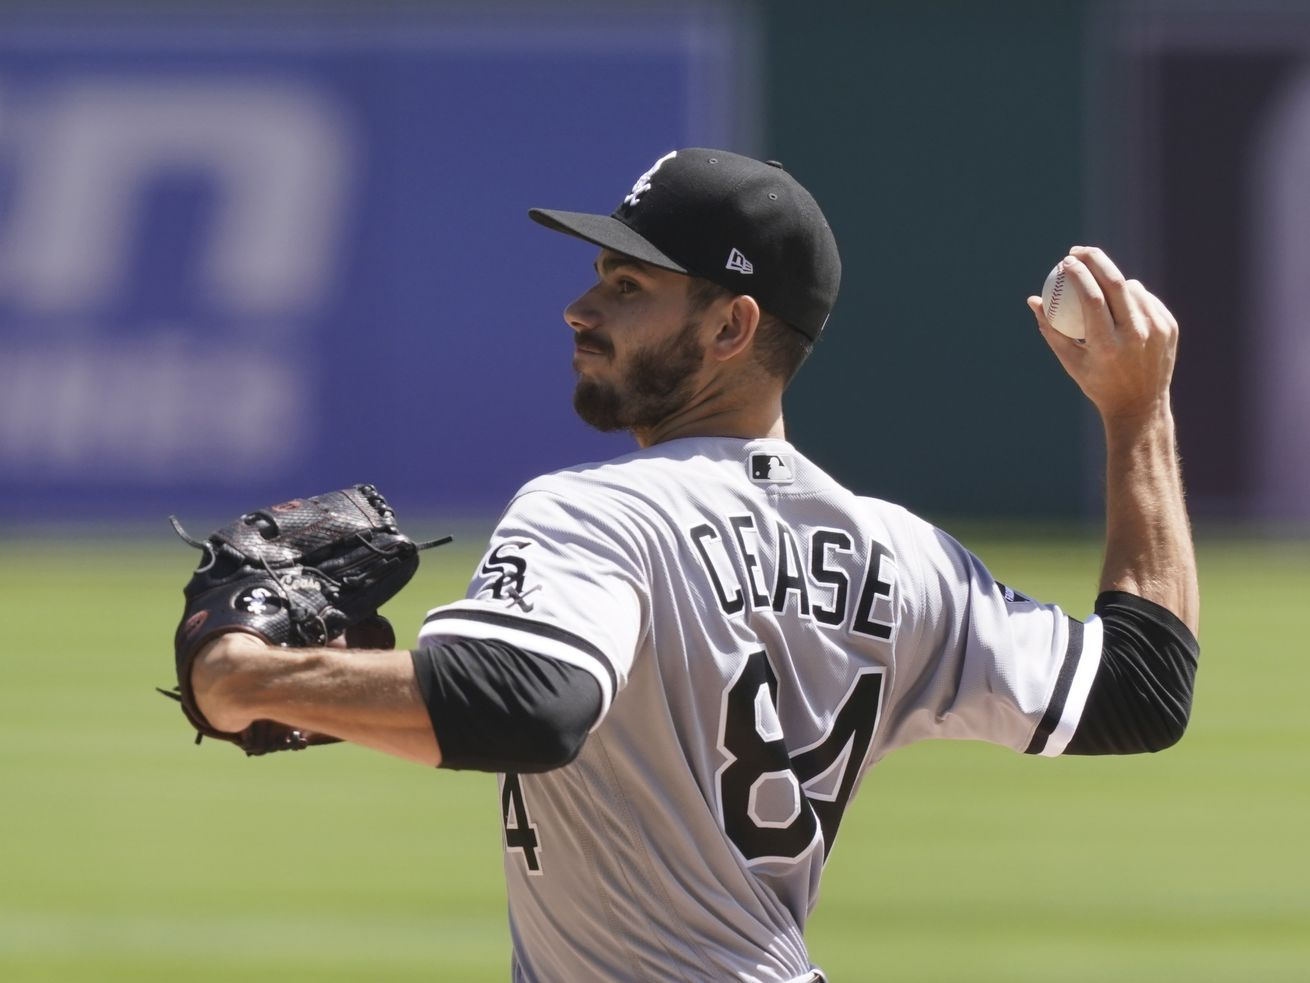 That's three good ones in a row for White Sox righty Dylan Cease